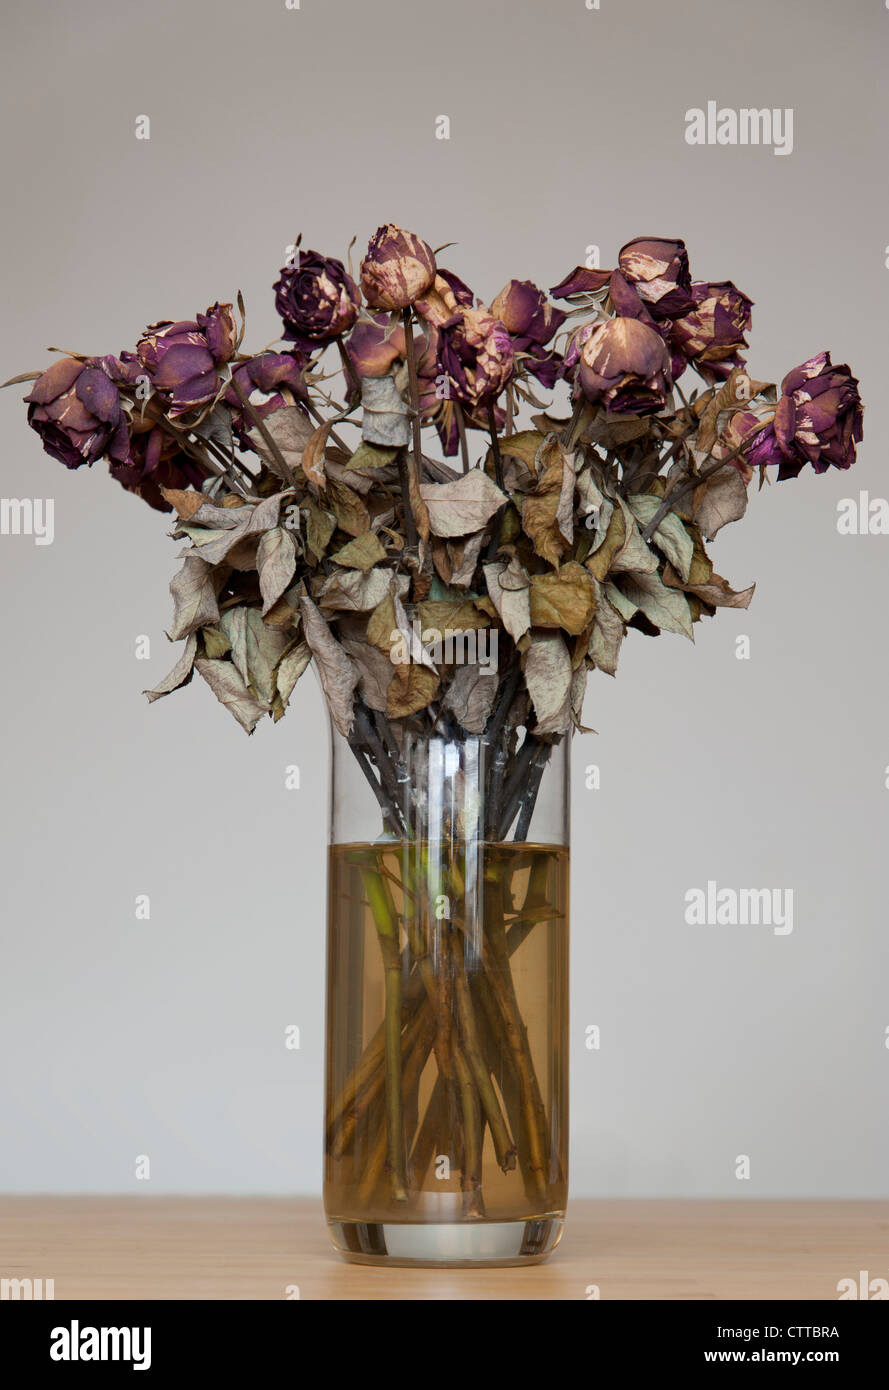 Dead Flowers Roses Stock Photos Dead Flowers Roses Stock Images